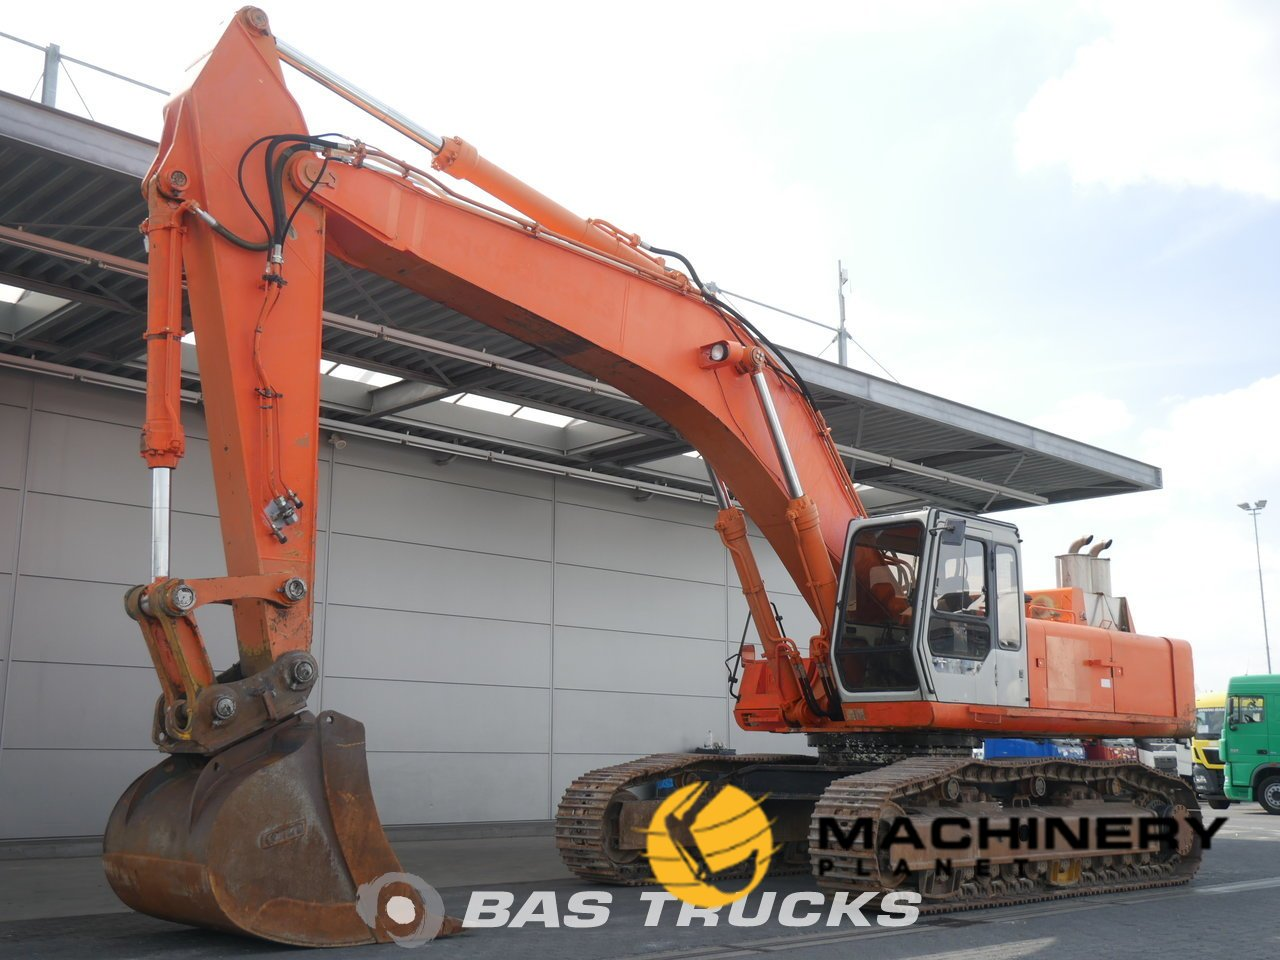 Used-Construction-equipment-Hitachi-FH450LCH-3-Track-1996_138690_1-1554125298955_5ca211f2e9394-1.jpg